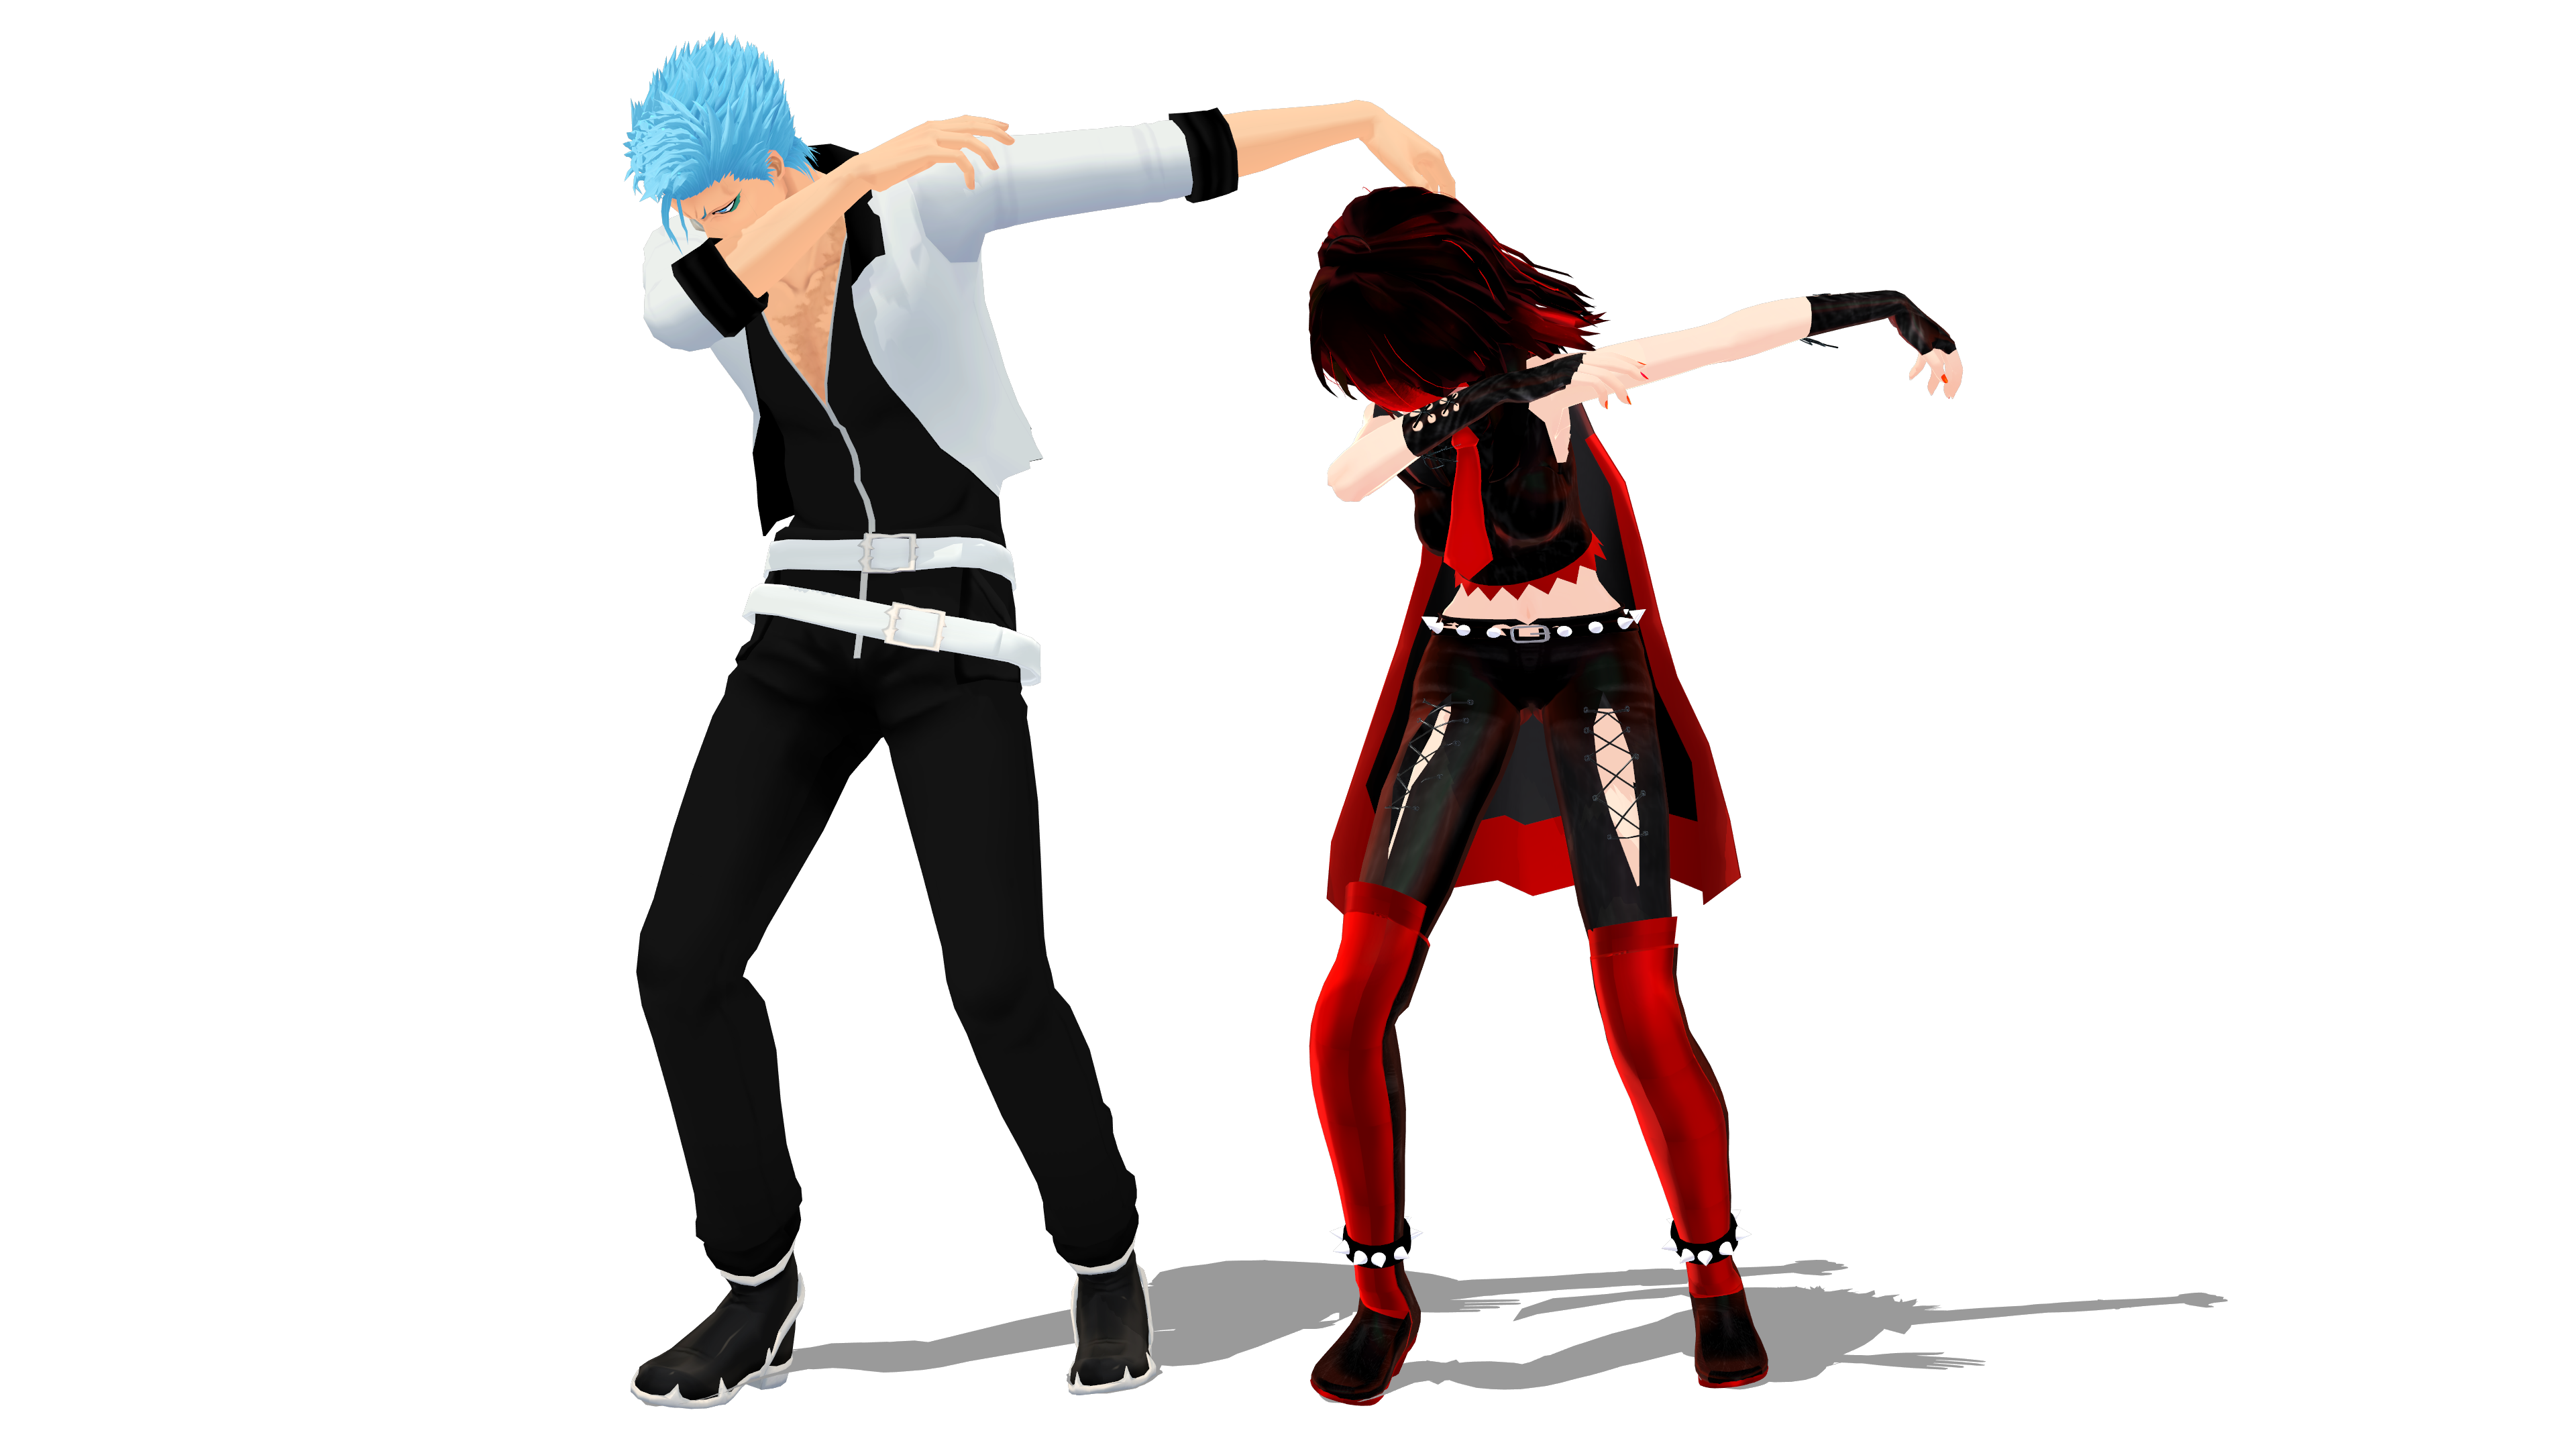 Couple posing png. Mmd dab pose dl